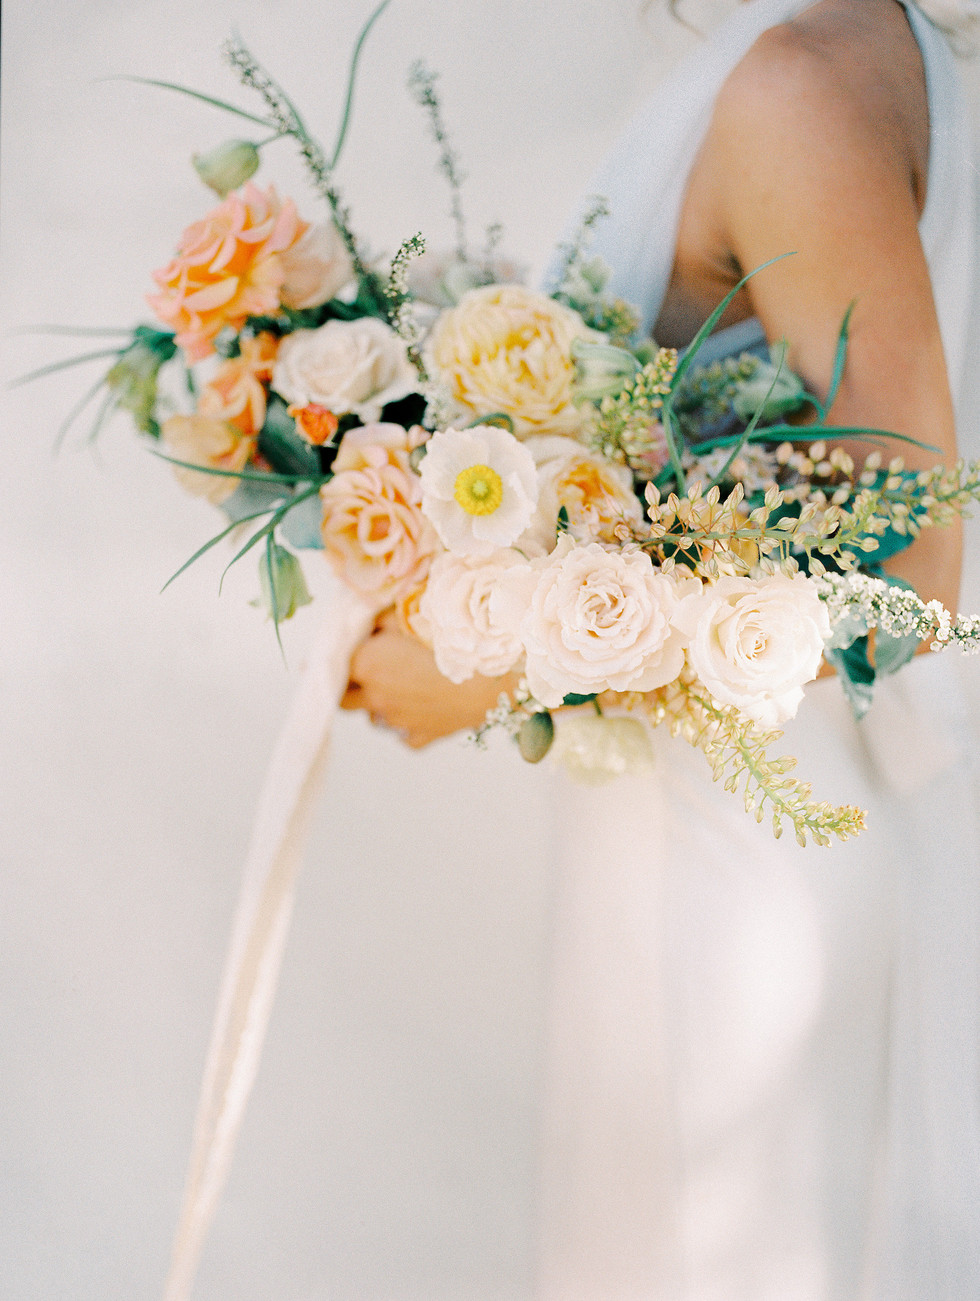 Spring wedding bouquet featuring garden roses, poppies, and fritillaria. Photo: Shannon Elizabeth